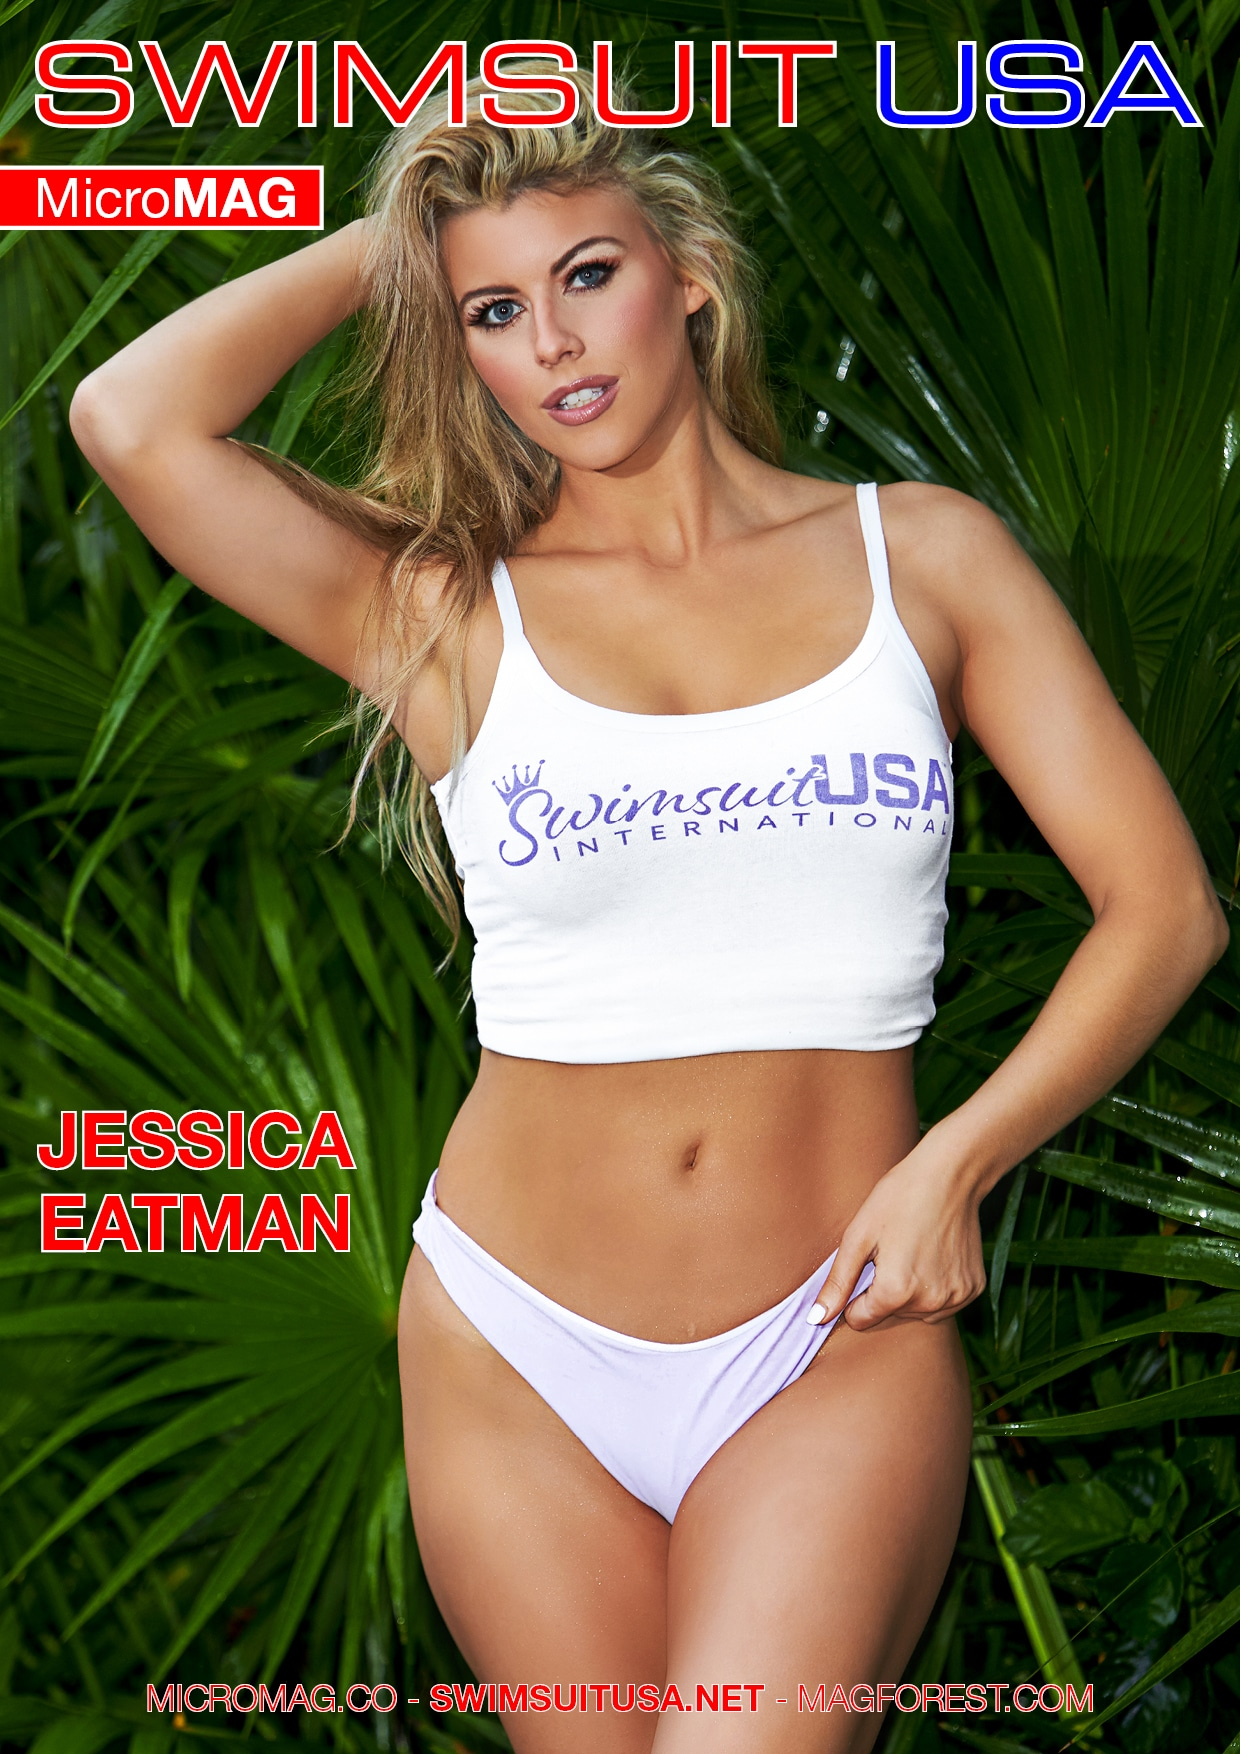 Swimsuit USA MicroMAG - Jessica Eatman - Issue 6 1